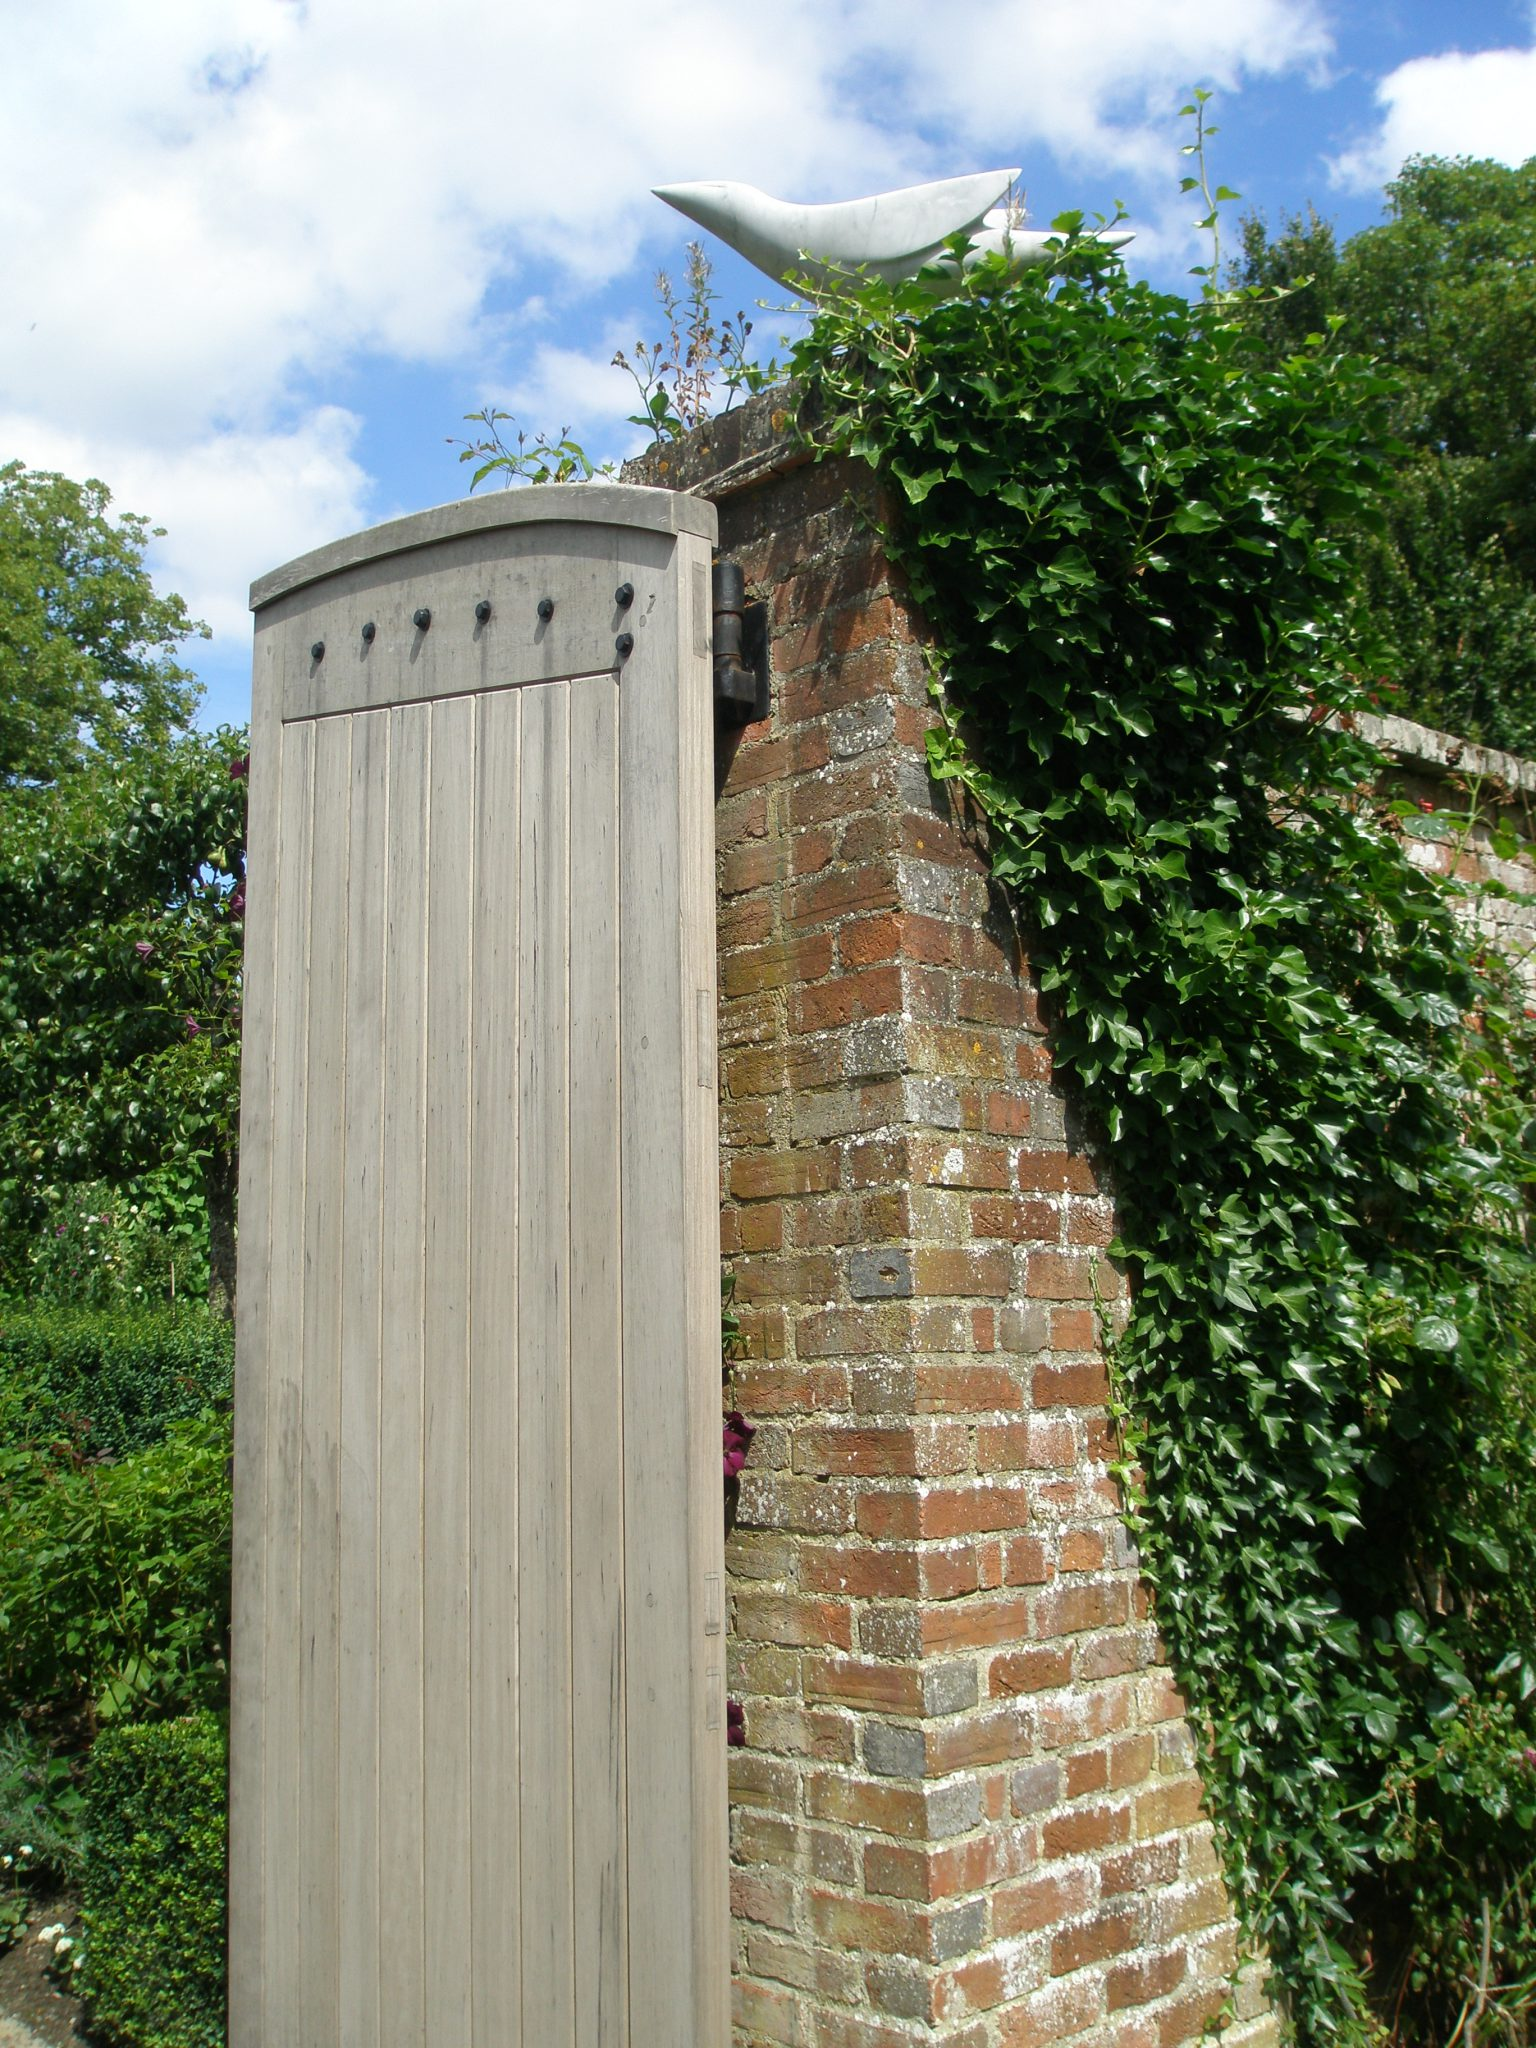 ABSTRACT DOVE, a marble by Ev Meynell, alights upon the main gate to the Walled Garden